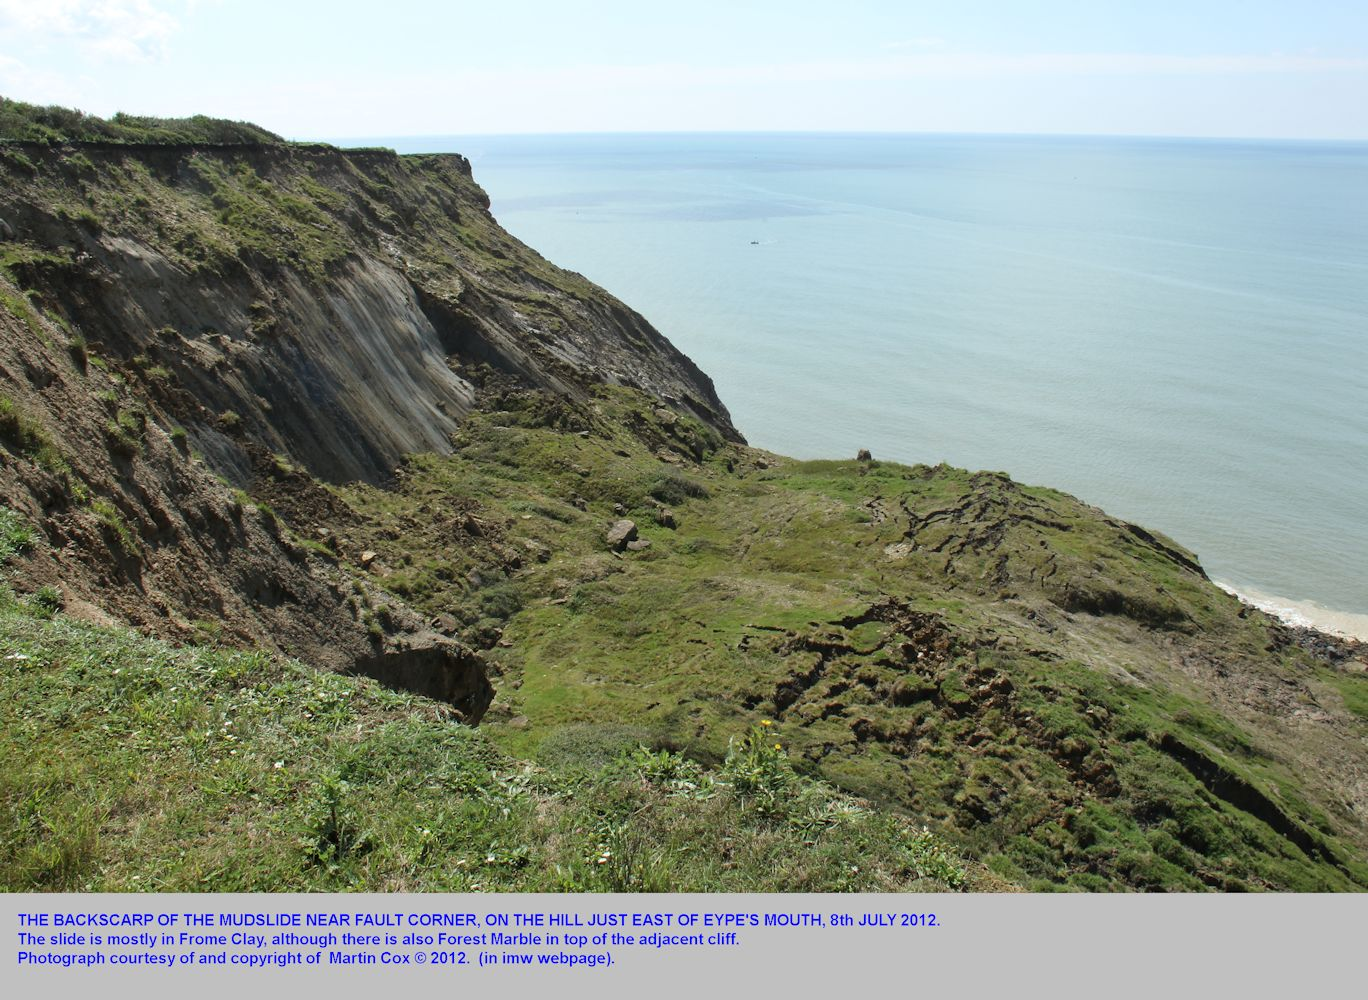 The backscarp near the cliff top of the mudslide at Eype's Mouth, near Bridport, Dorset, on the 8th July 2012, photograph by Martin Cox